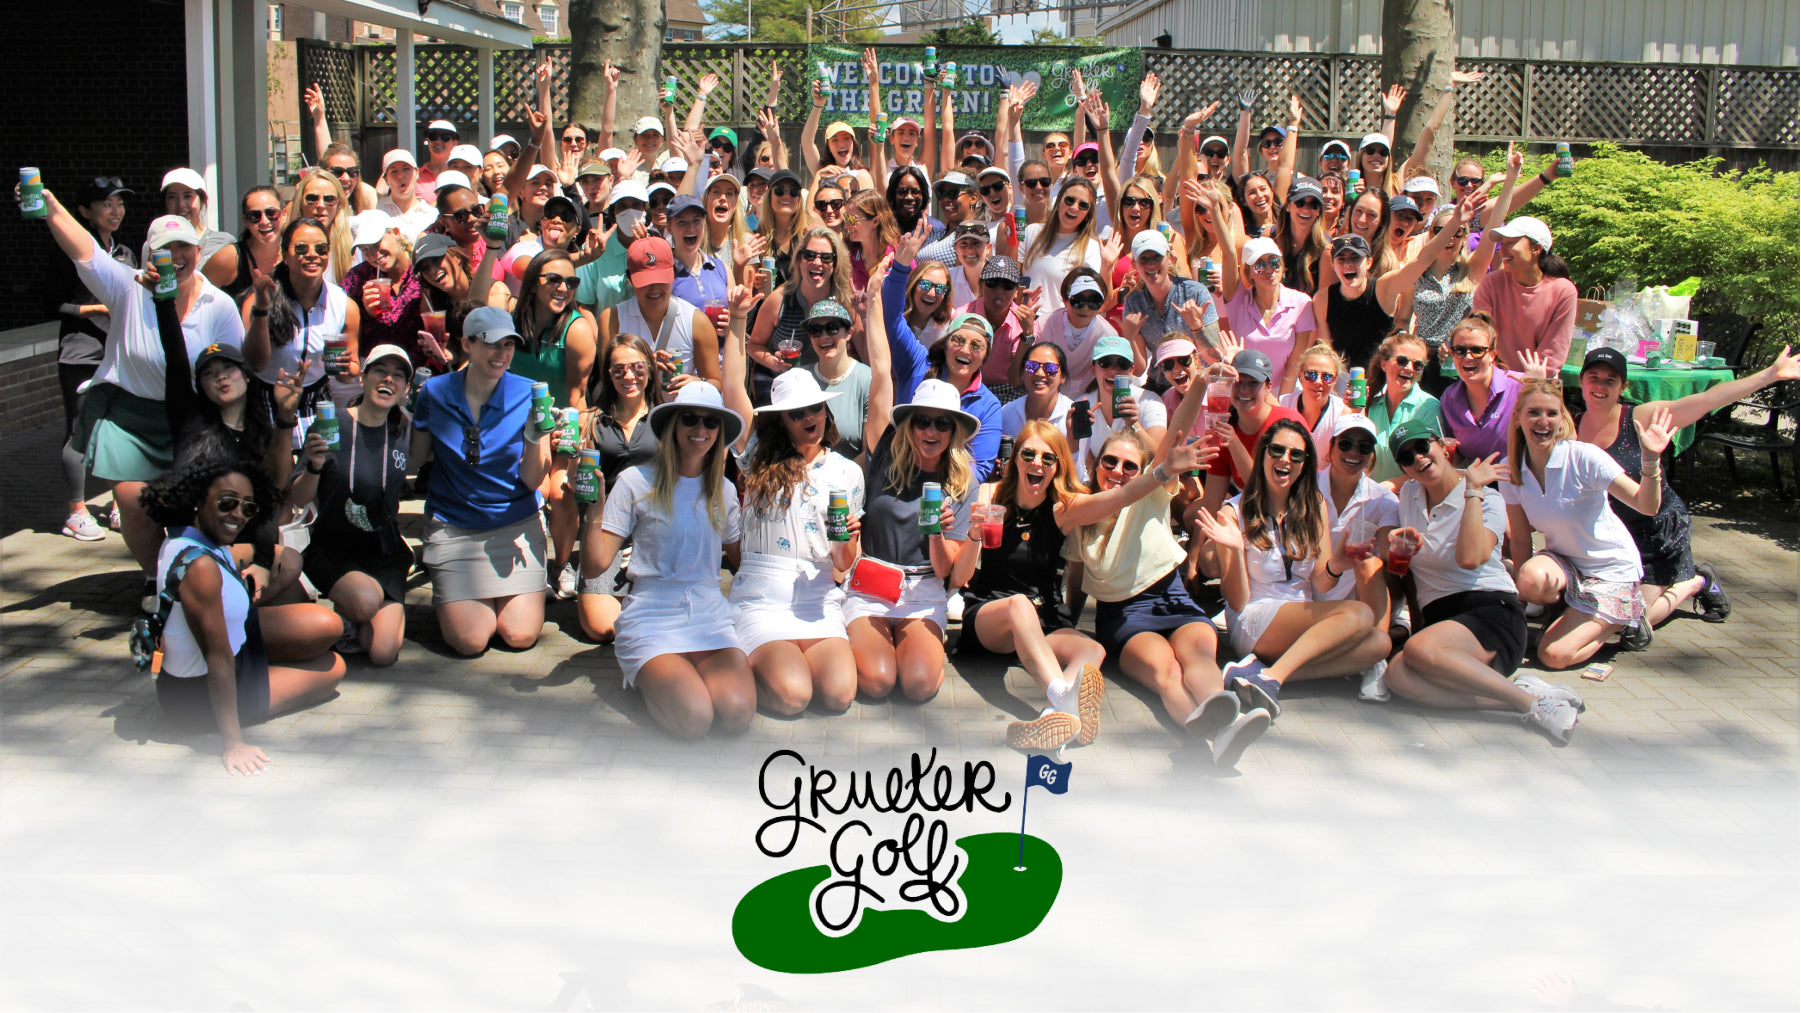 Grueter Golf Growing the Game